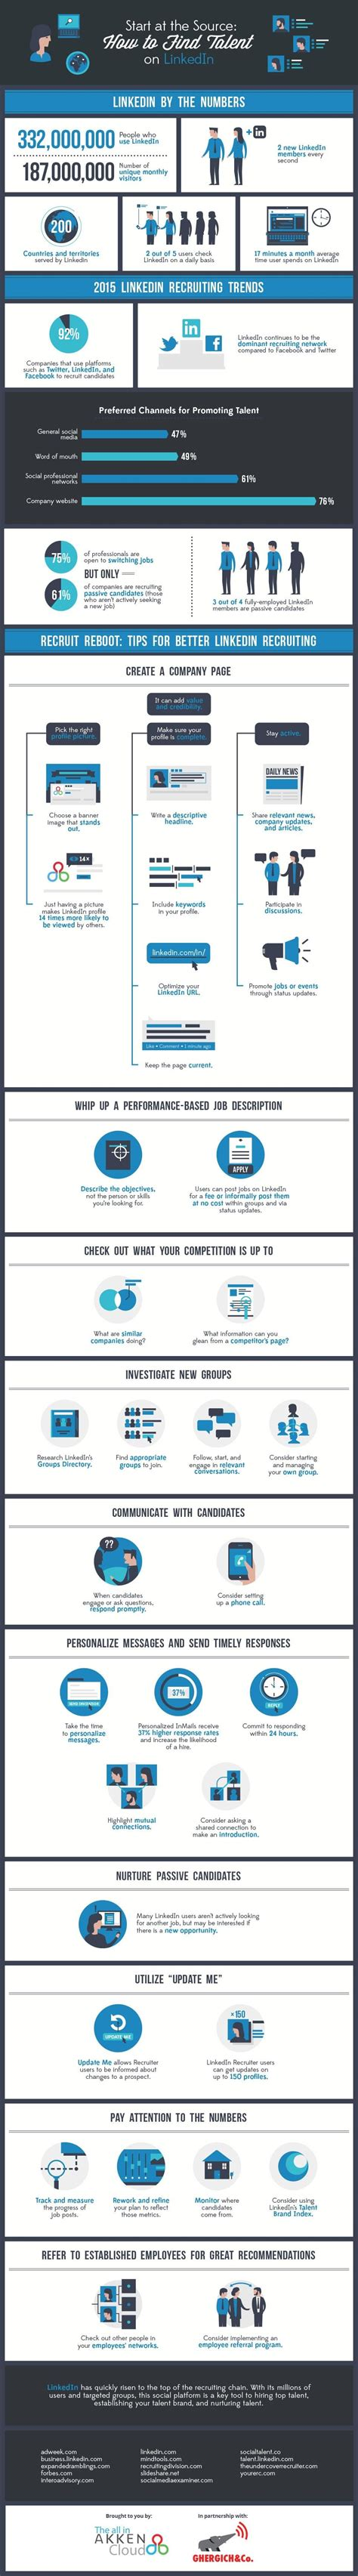 How To Find On Linkedin How To Find Top Talent On Linkedin Infographic